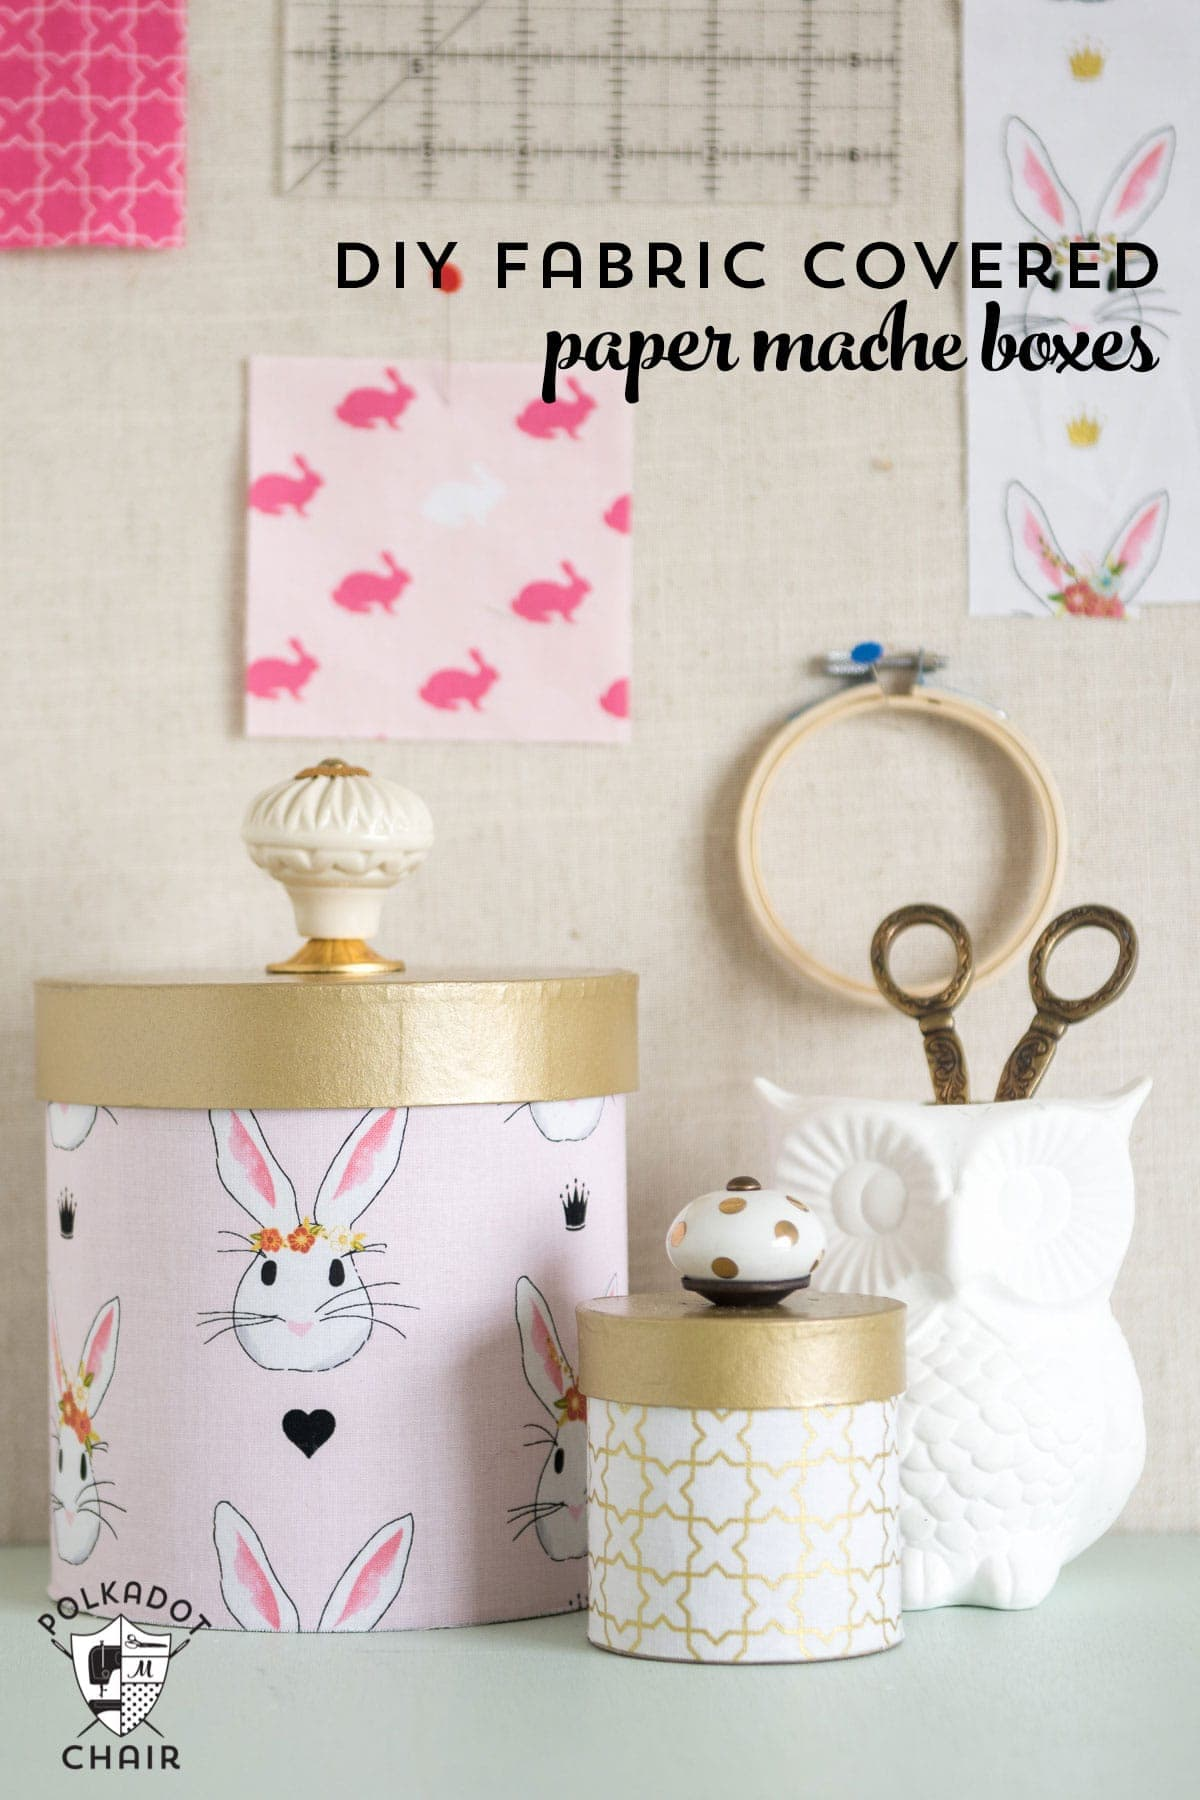 How To Cover Paper Mache Boxes With Fabric The Polka Dot Chair Ideas Hide Fuse Box